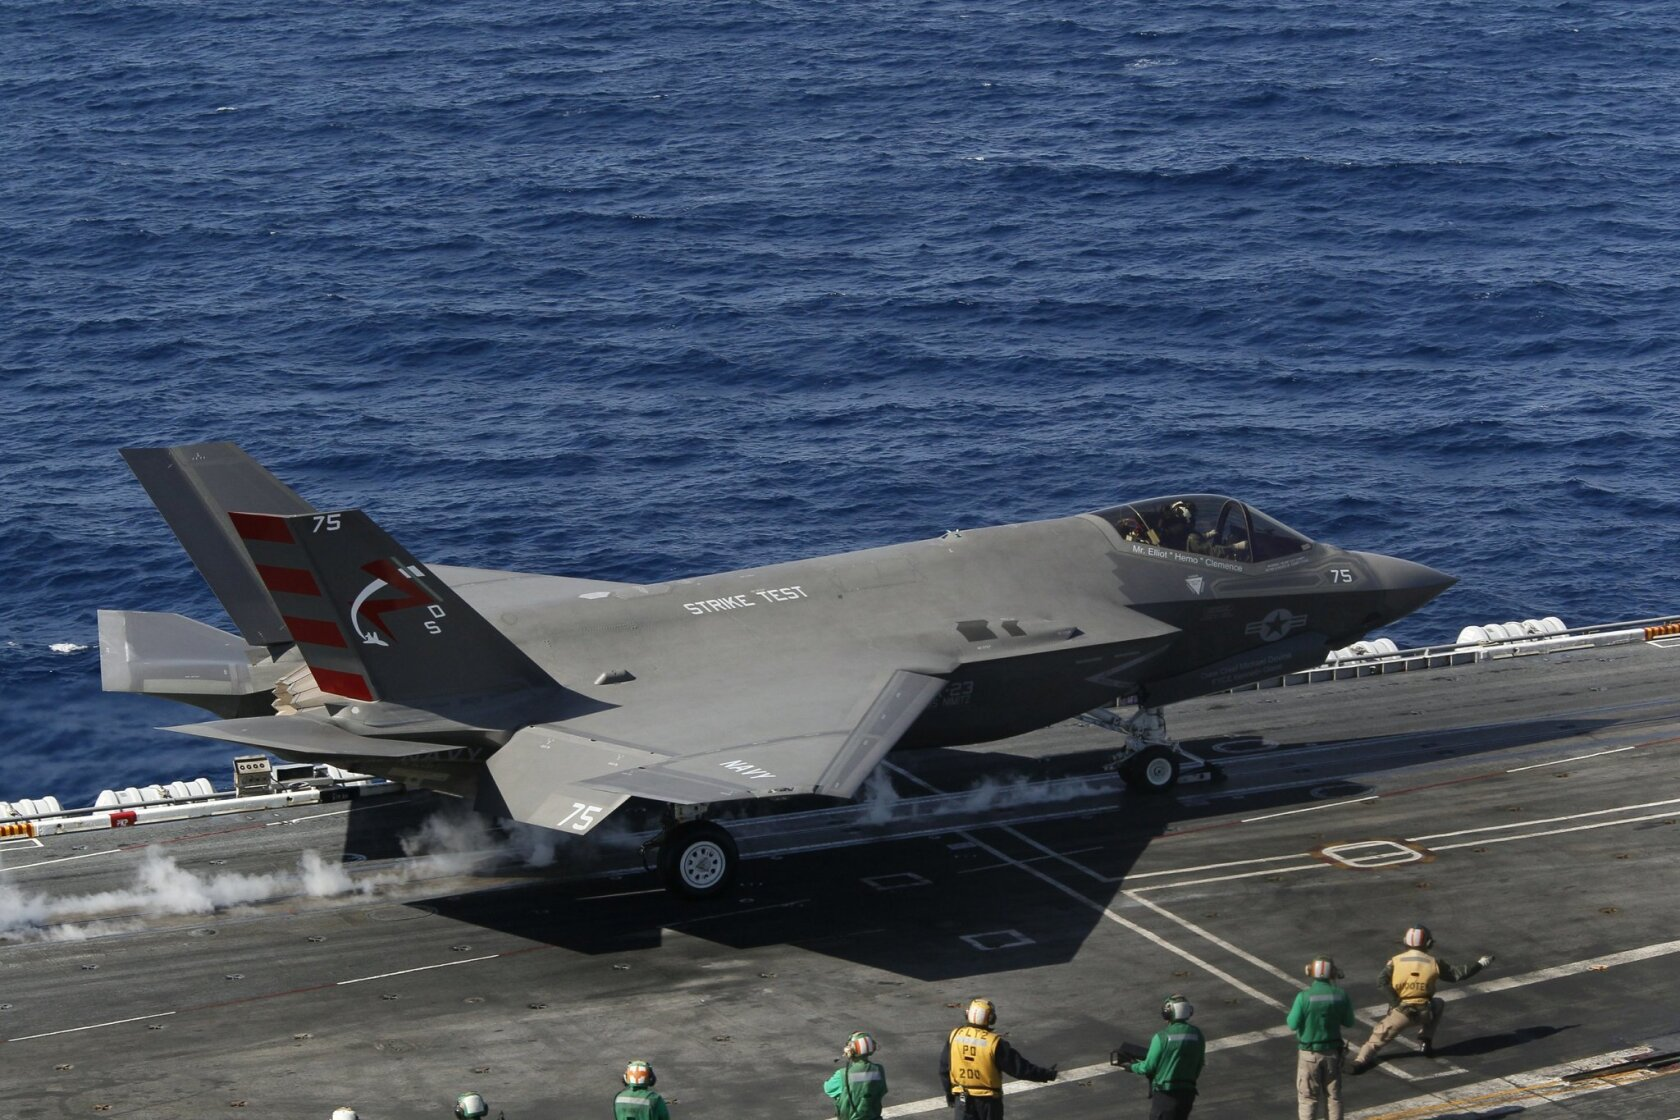 Navy flying: With the F-35C, no more tricky landings? Joint